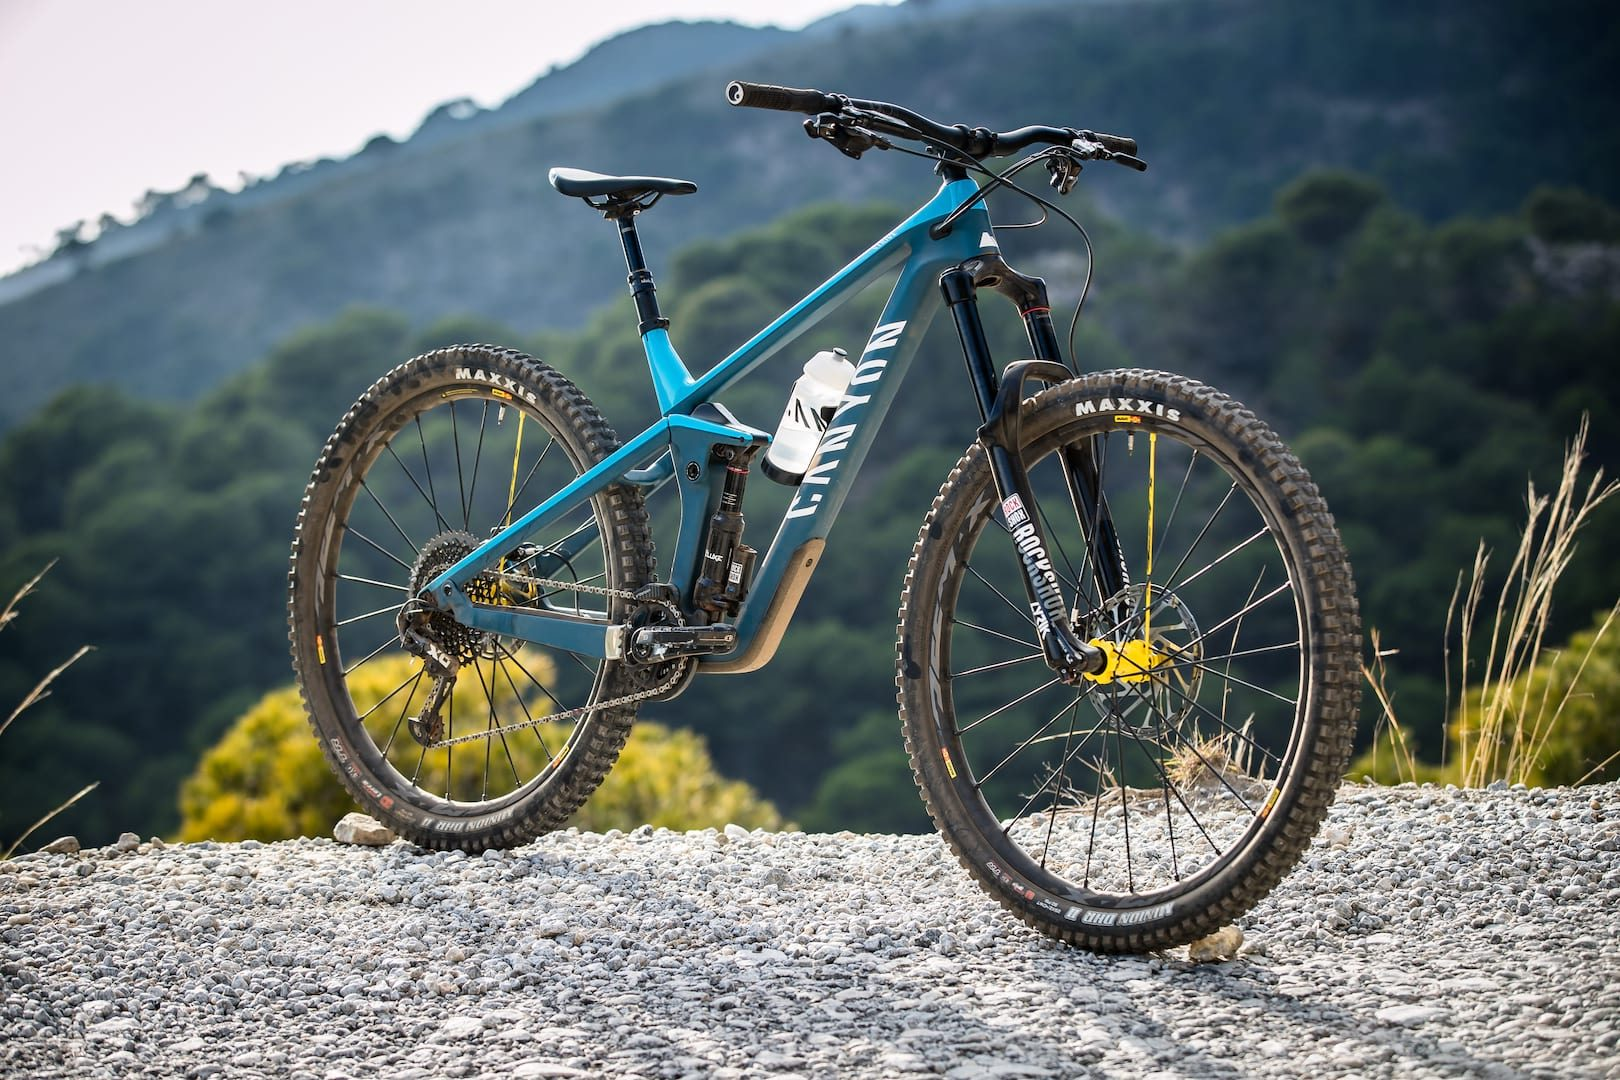 2019 Canyon Strive First Ride Impressions with Shapeshifter